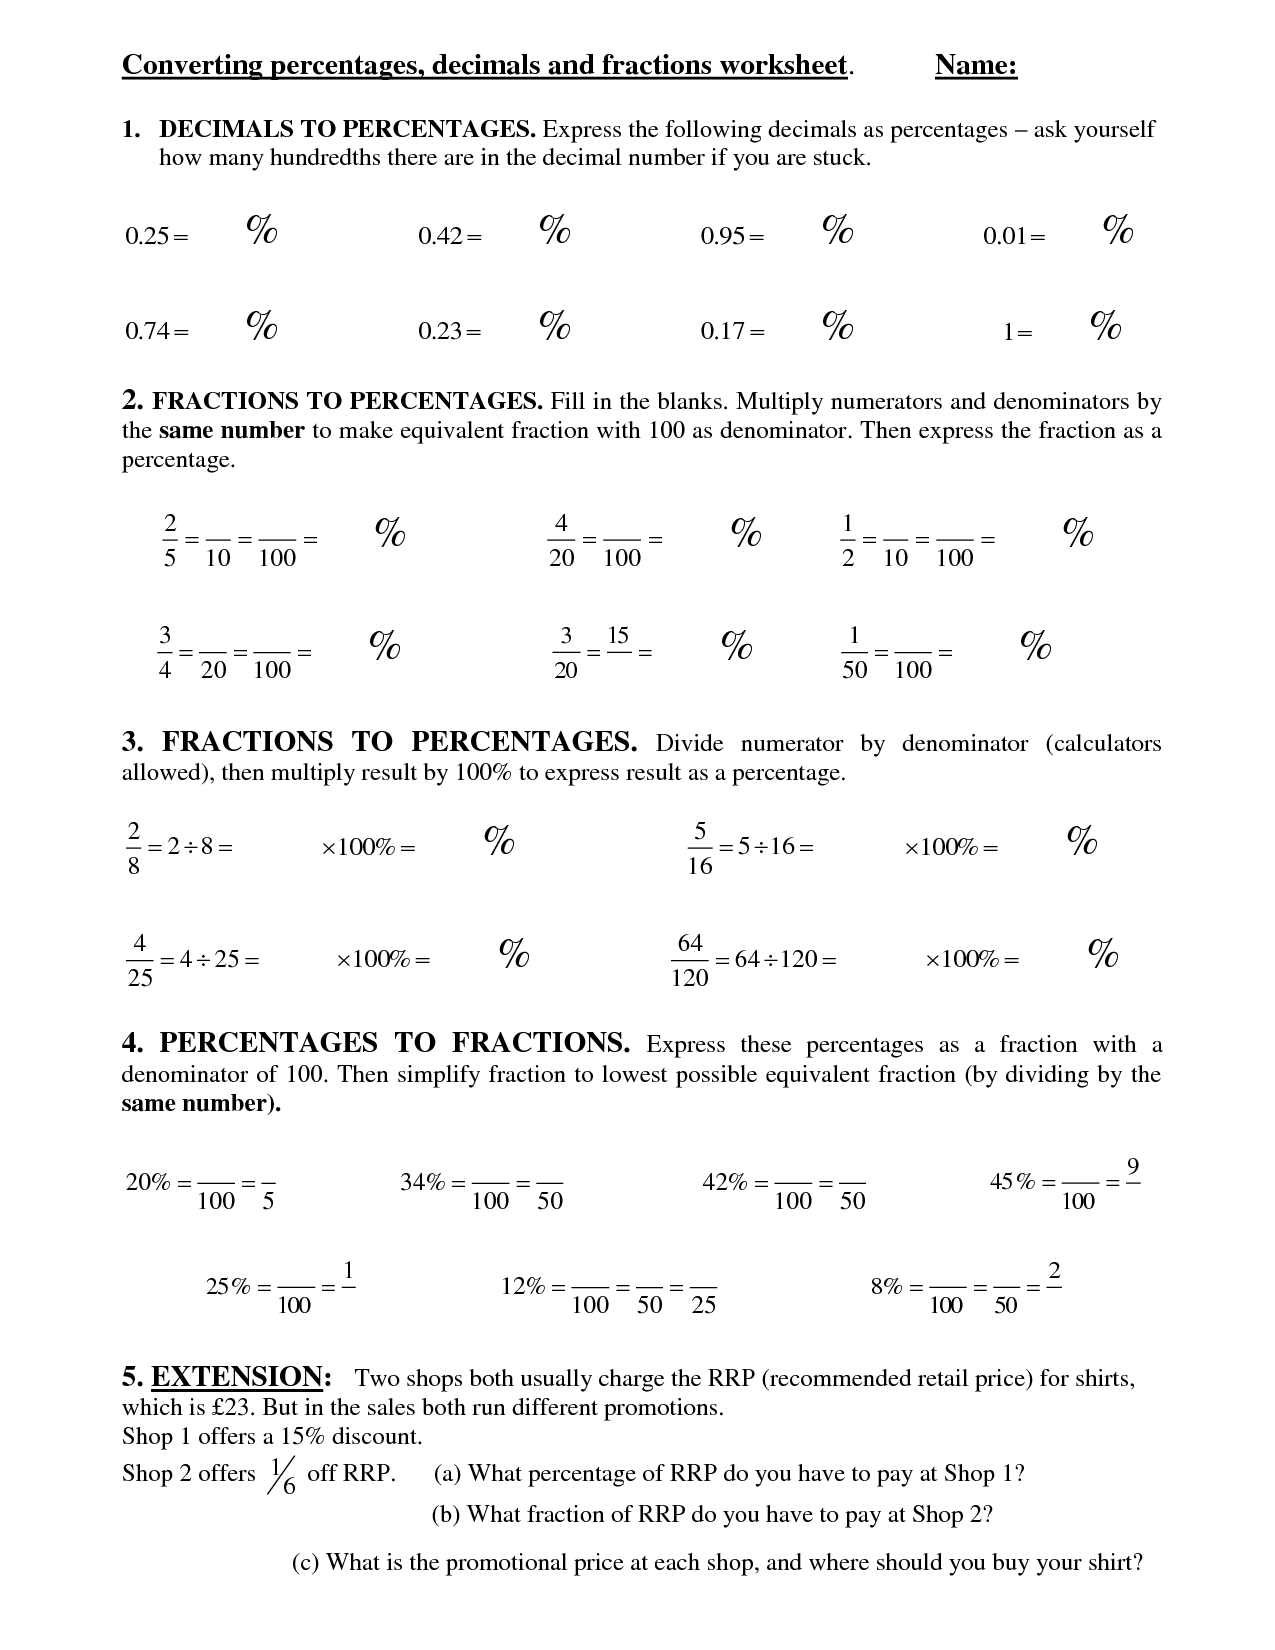 Converting Repeating Decimals To Fractions Worksheets 8th